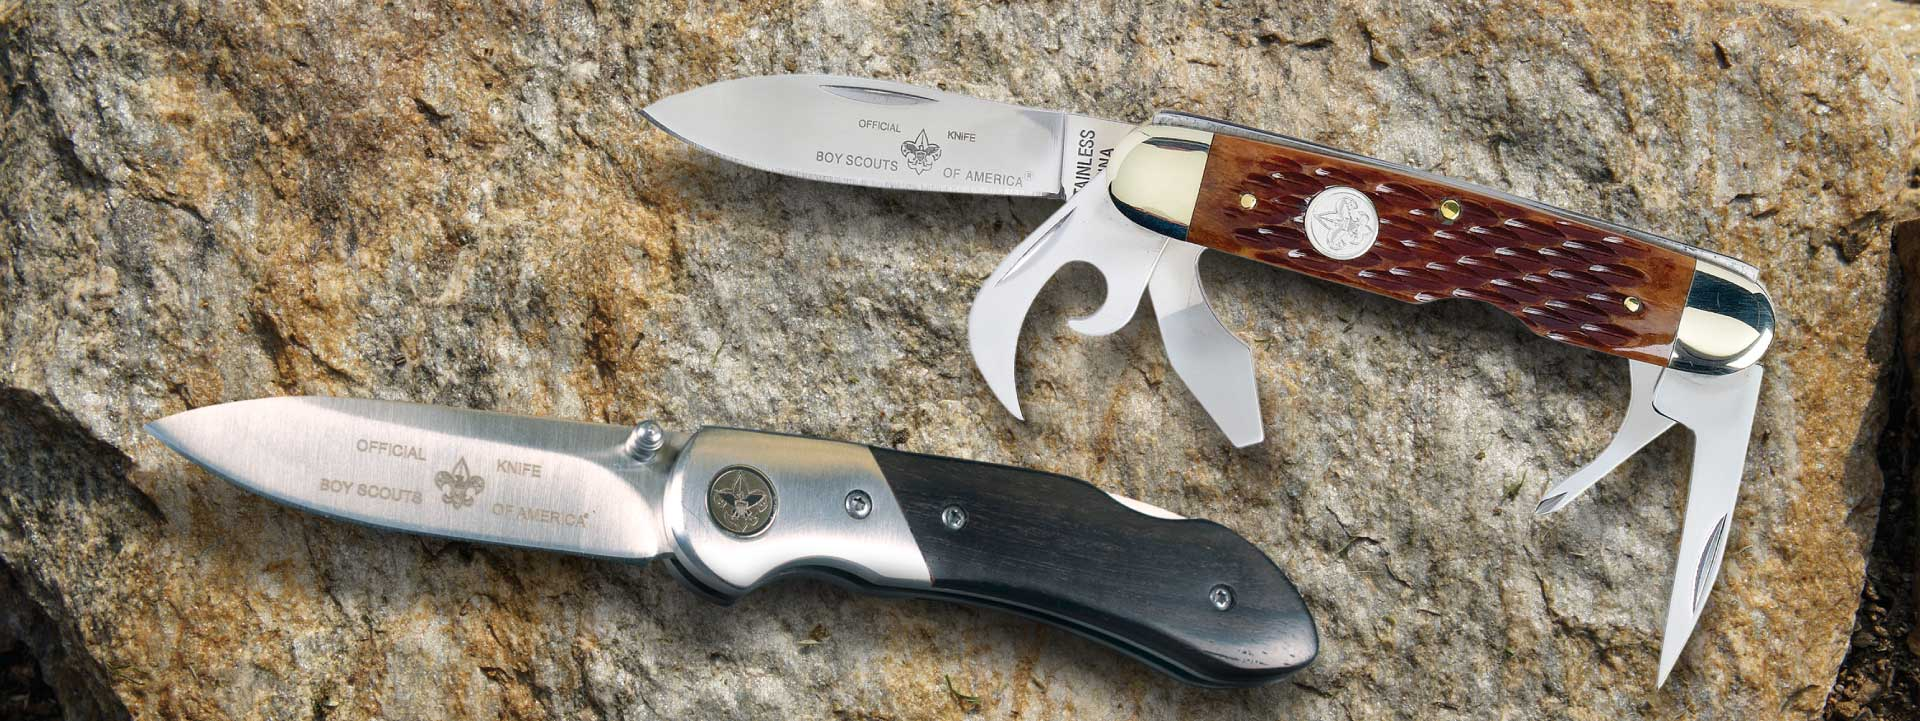 BSA Scout Branded Pocket Knives